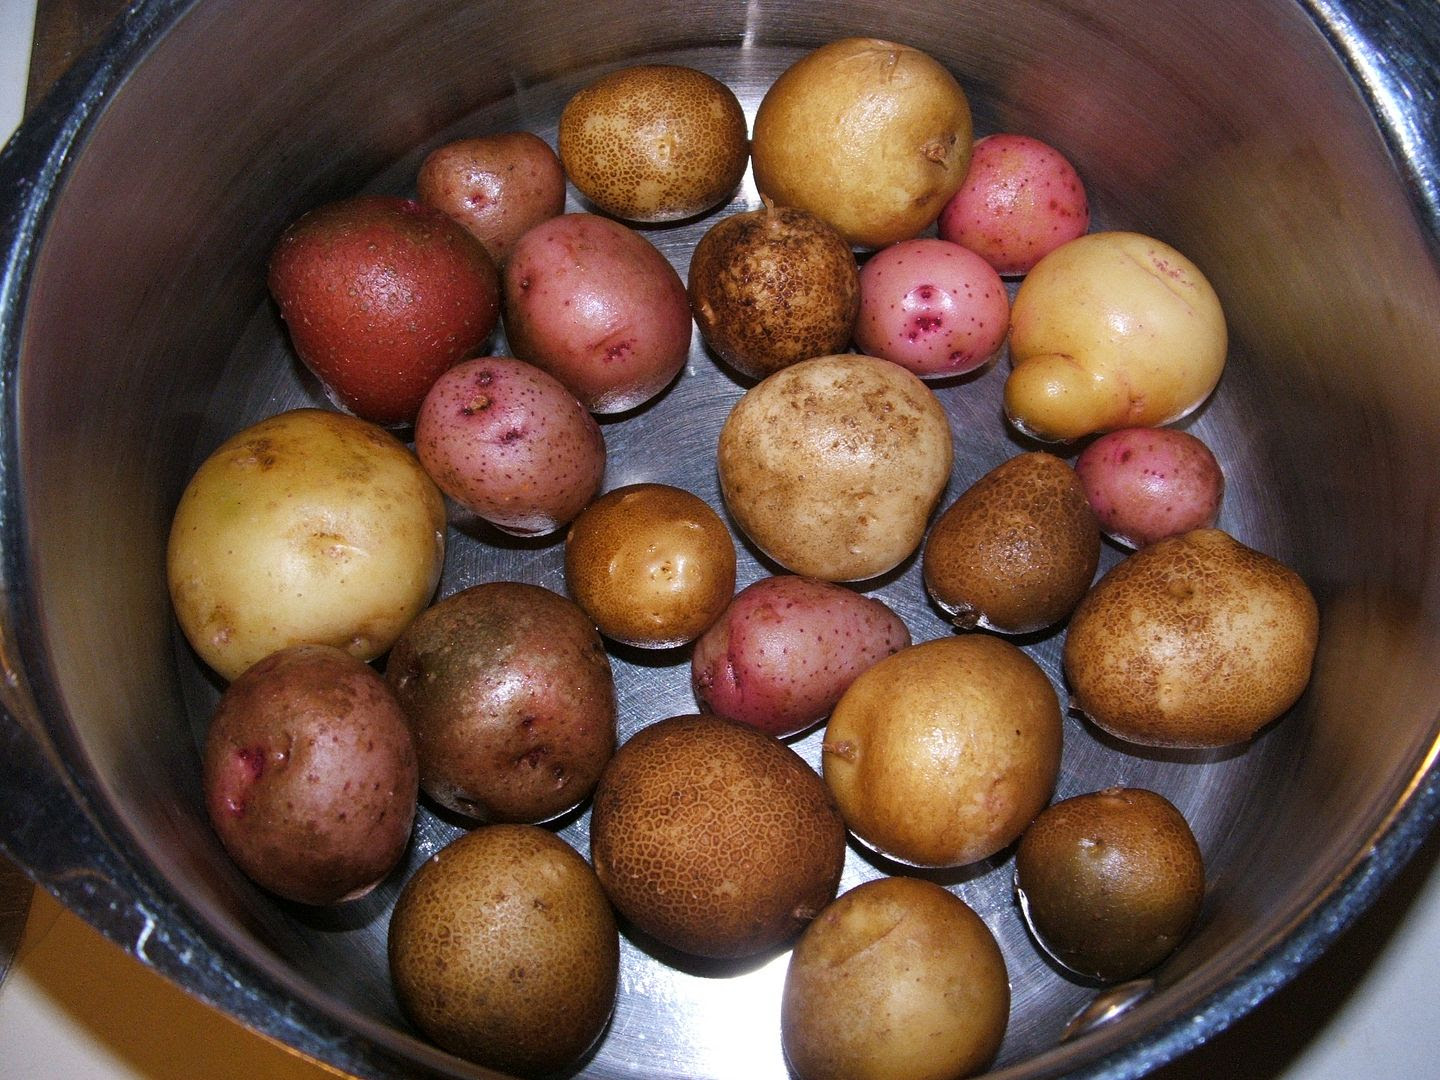 Tiny Tender Tater Treats by Angie Ouellette-Tower for godsgrowinggarden.com photo 001_zpsb231cdae.jpg